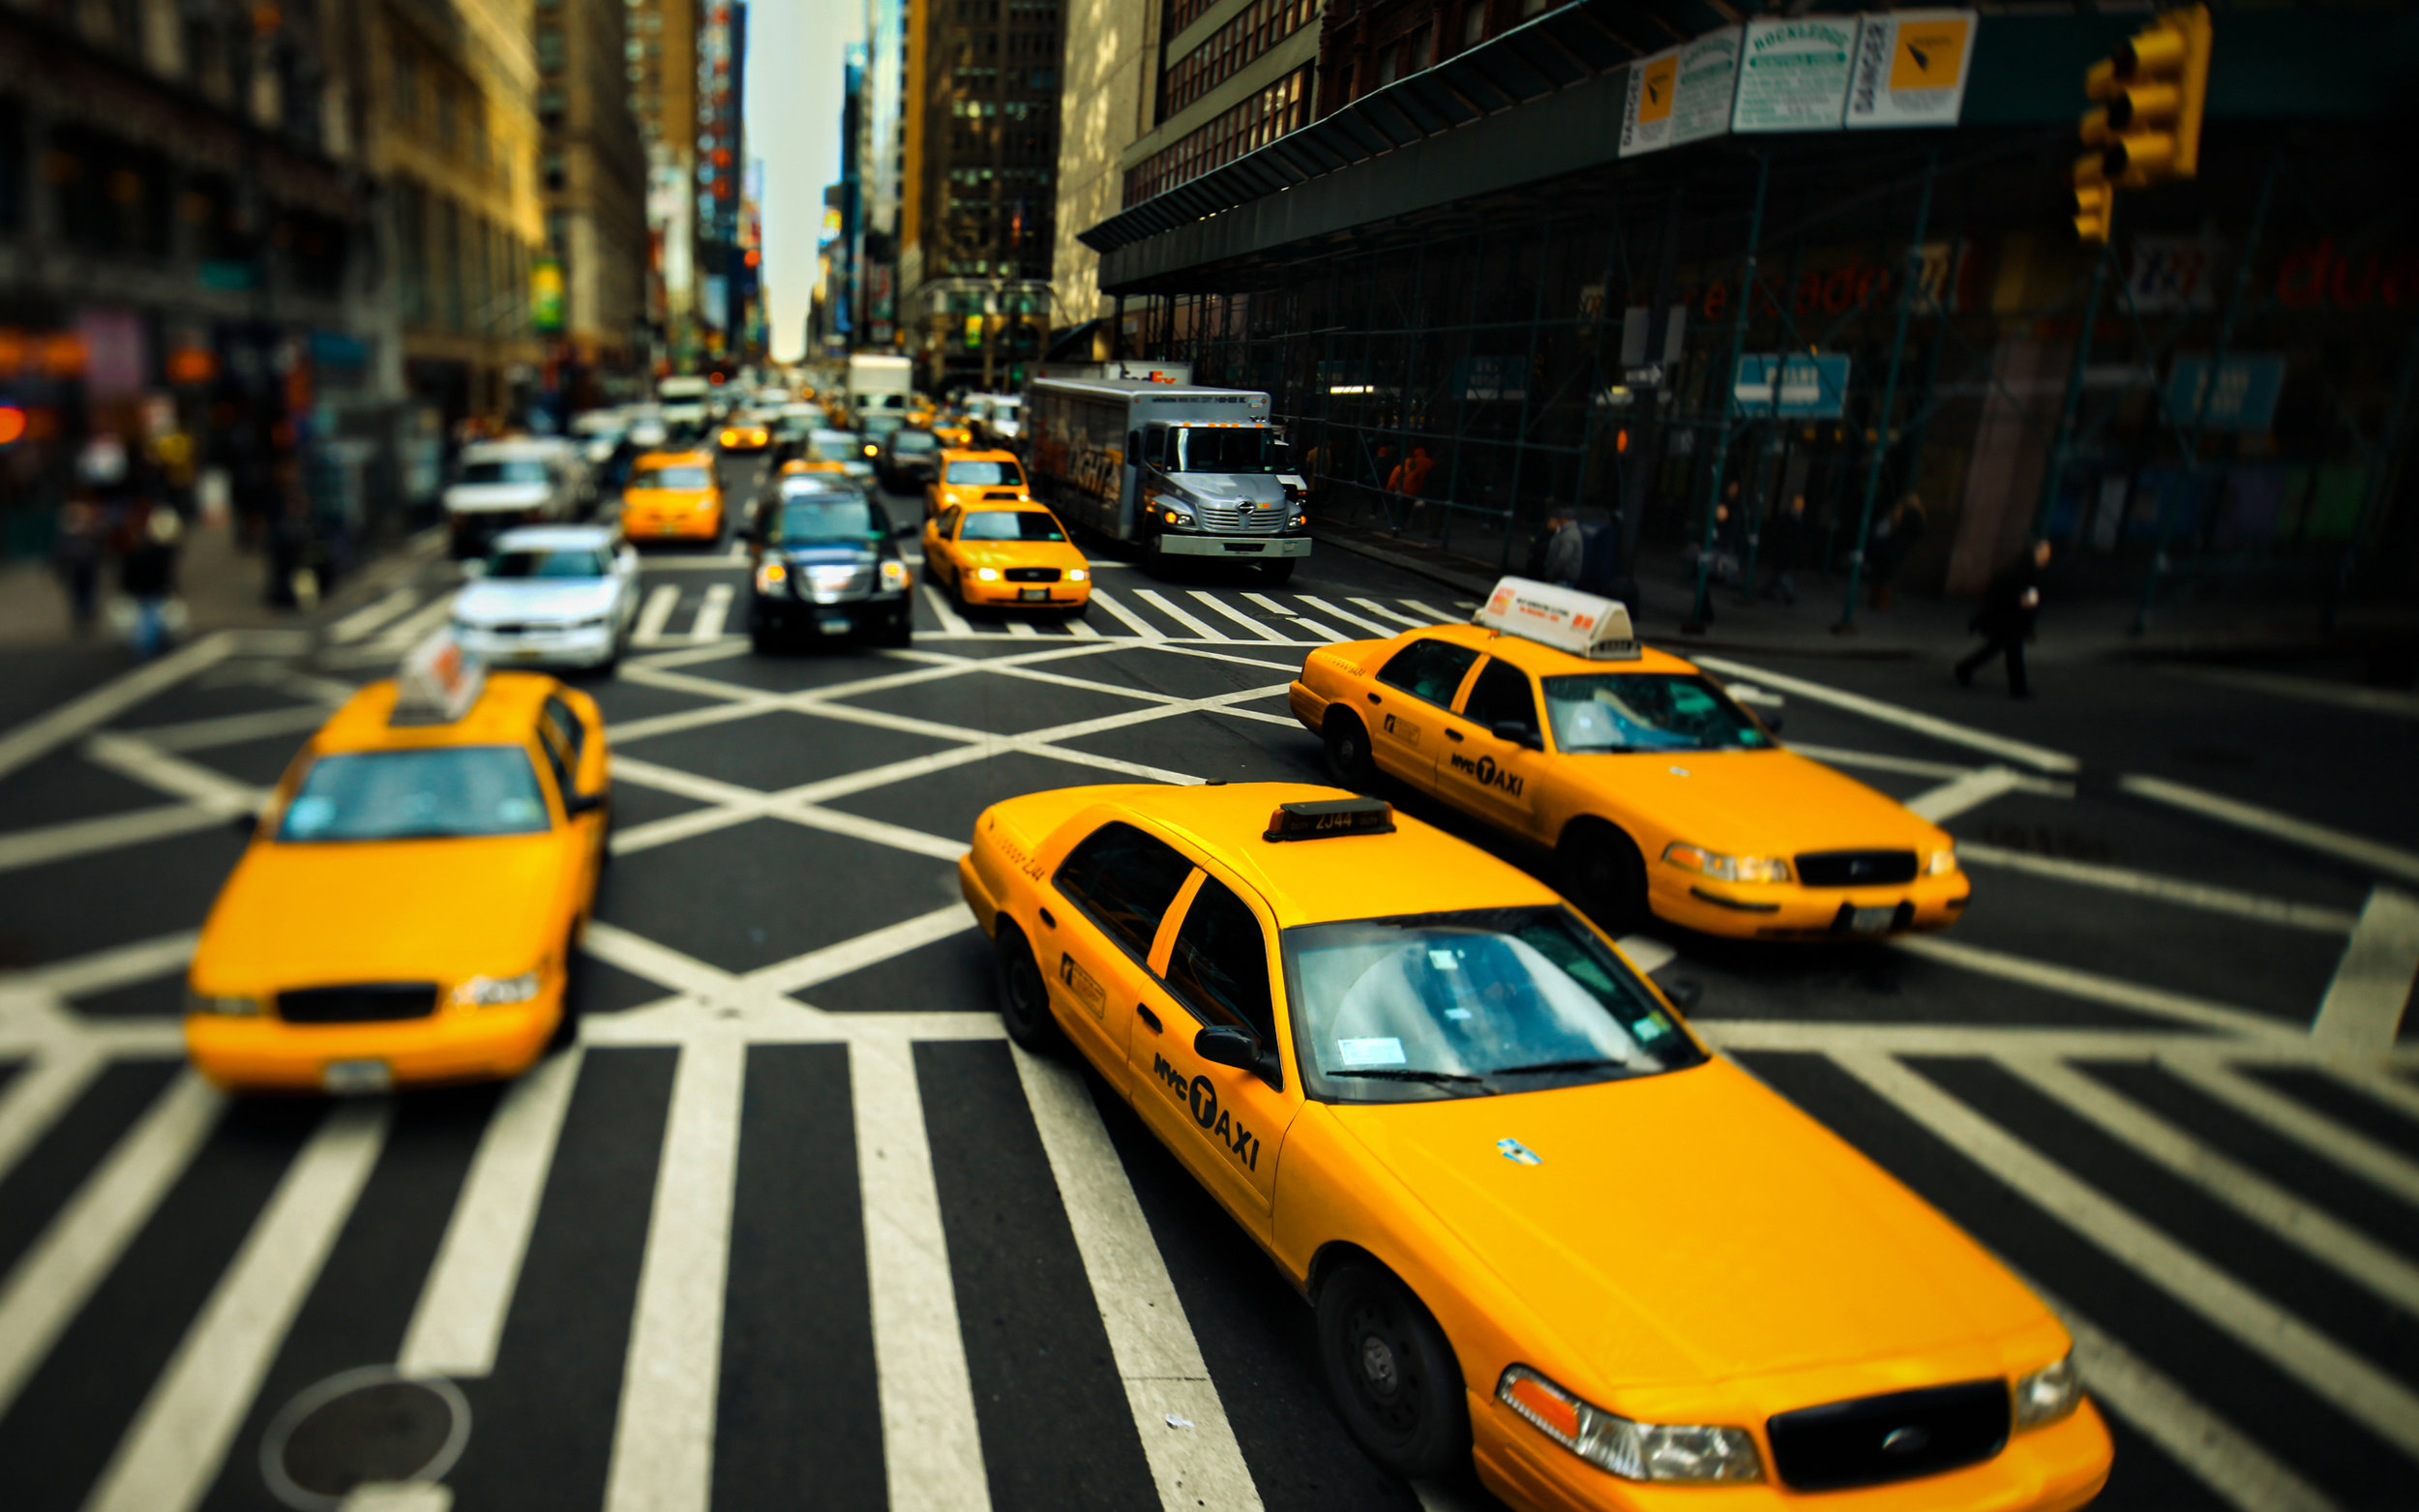 Airport transfer - We are happy to arrange your Schiphol transfer by taxi upon request for €33.